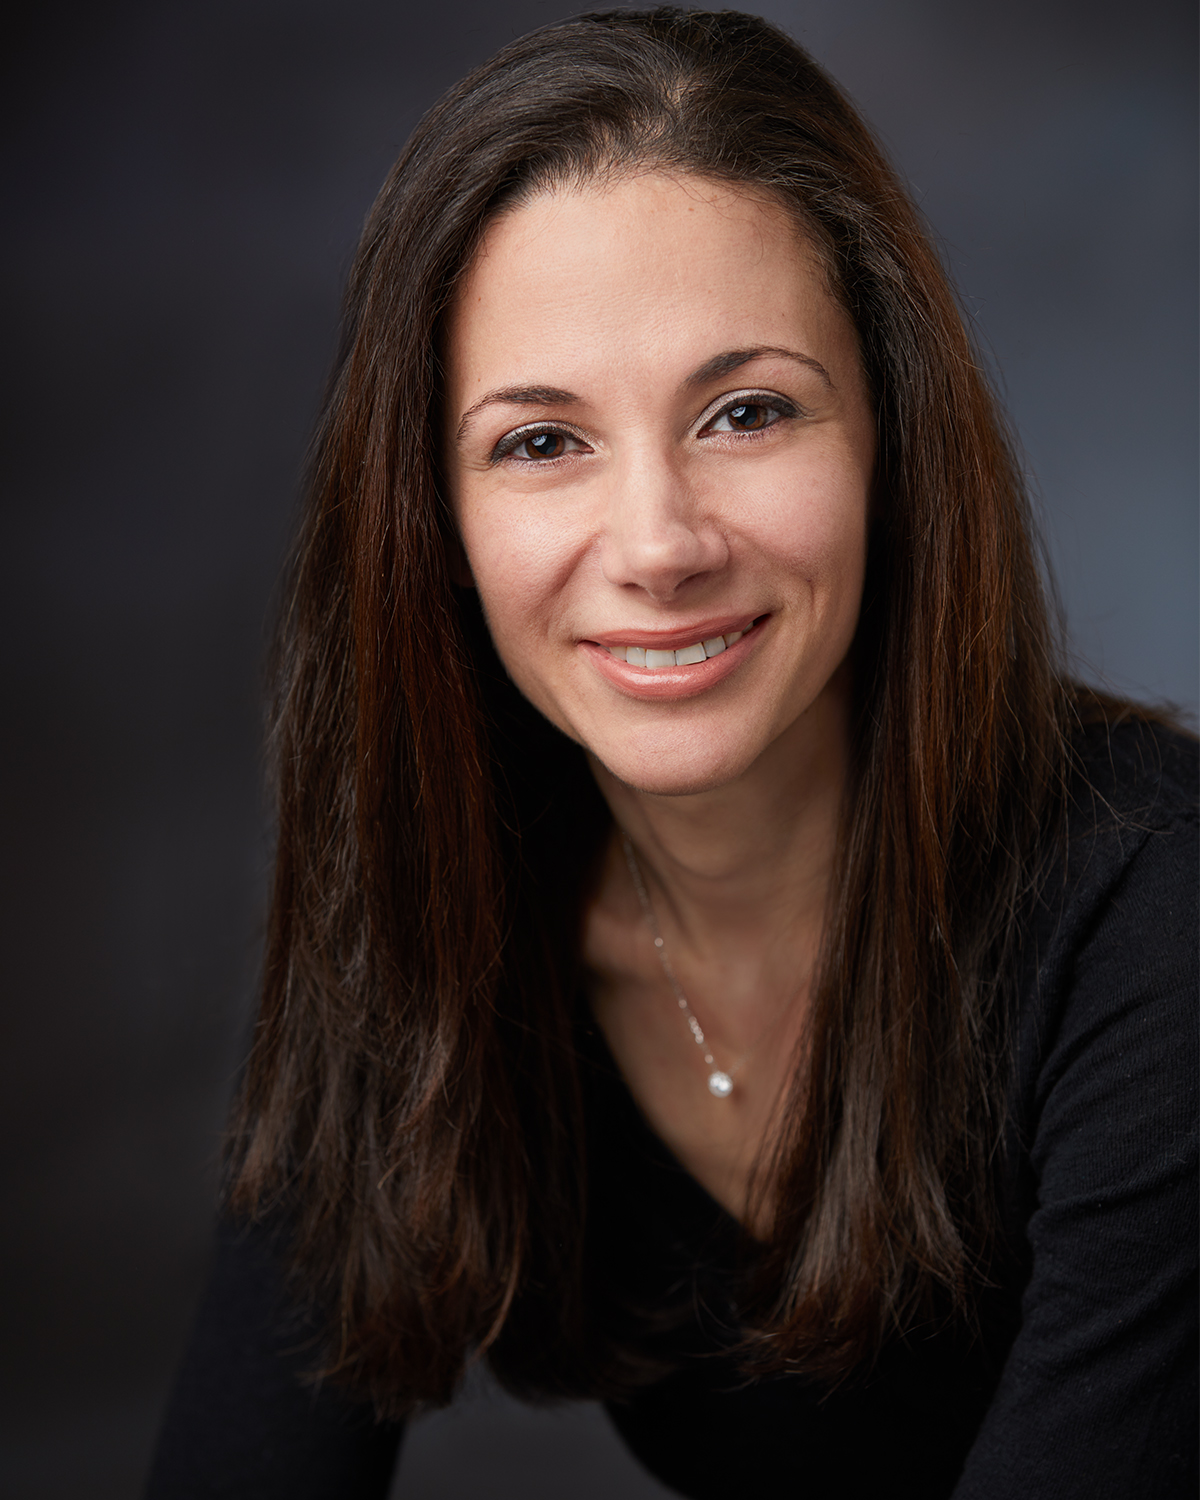 Neda Jafarian, MD - Radiologist, Diagnostic Imaging NW in Portland, OR